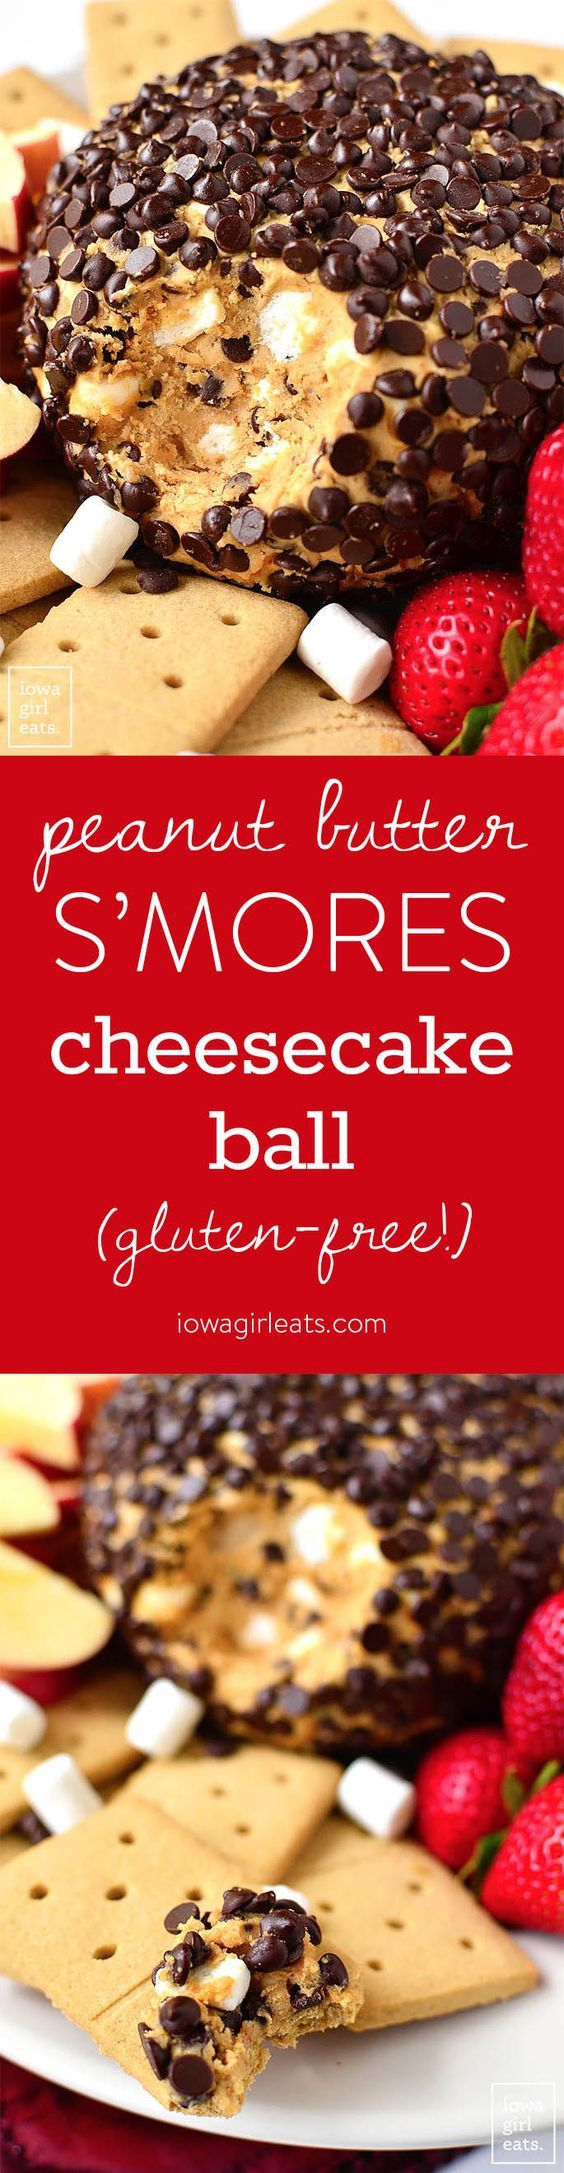 Peanut Butter S'Mores Cheesecake Ball is ridiculously delicious and assembles in just 10 minutes. The perfect gluten-free party treat for summer or any time of year!   iowagirleats.com